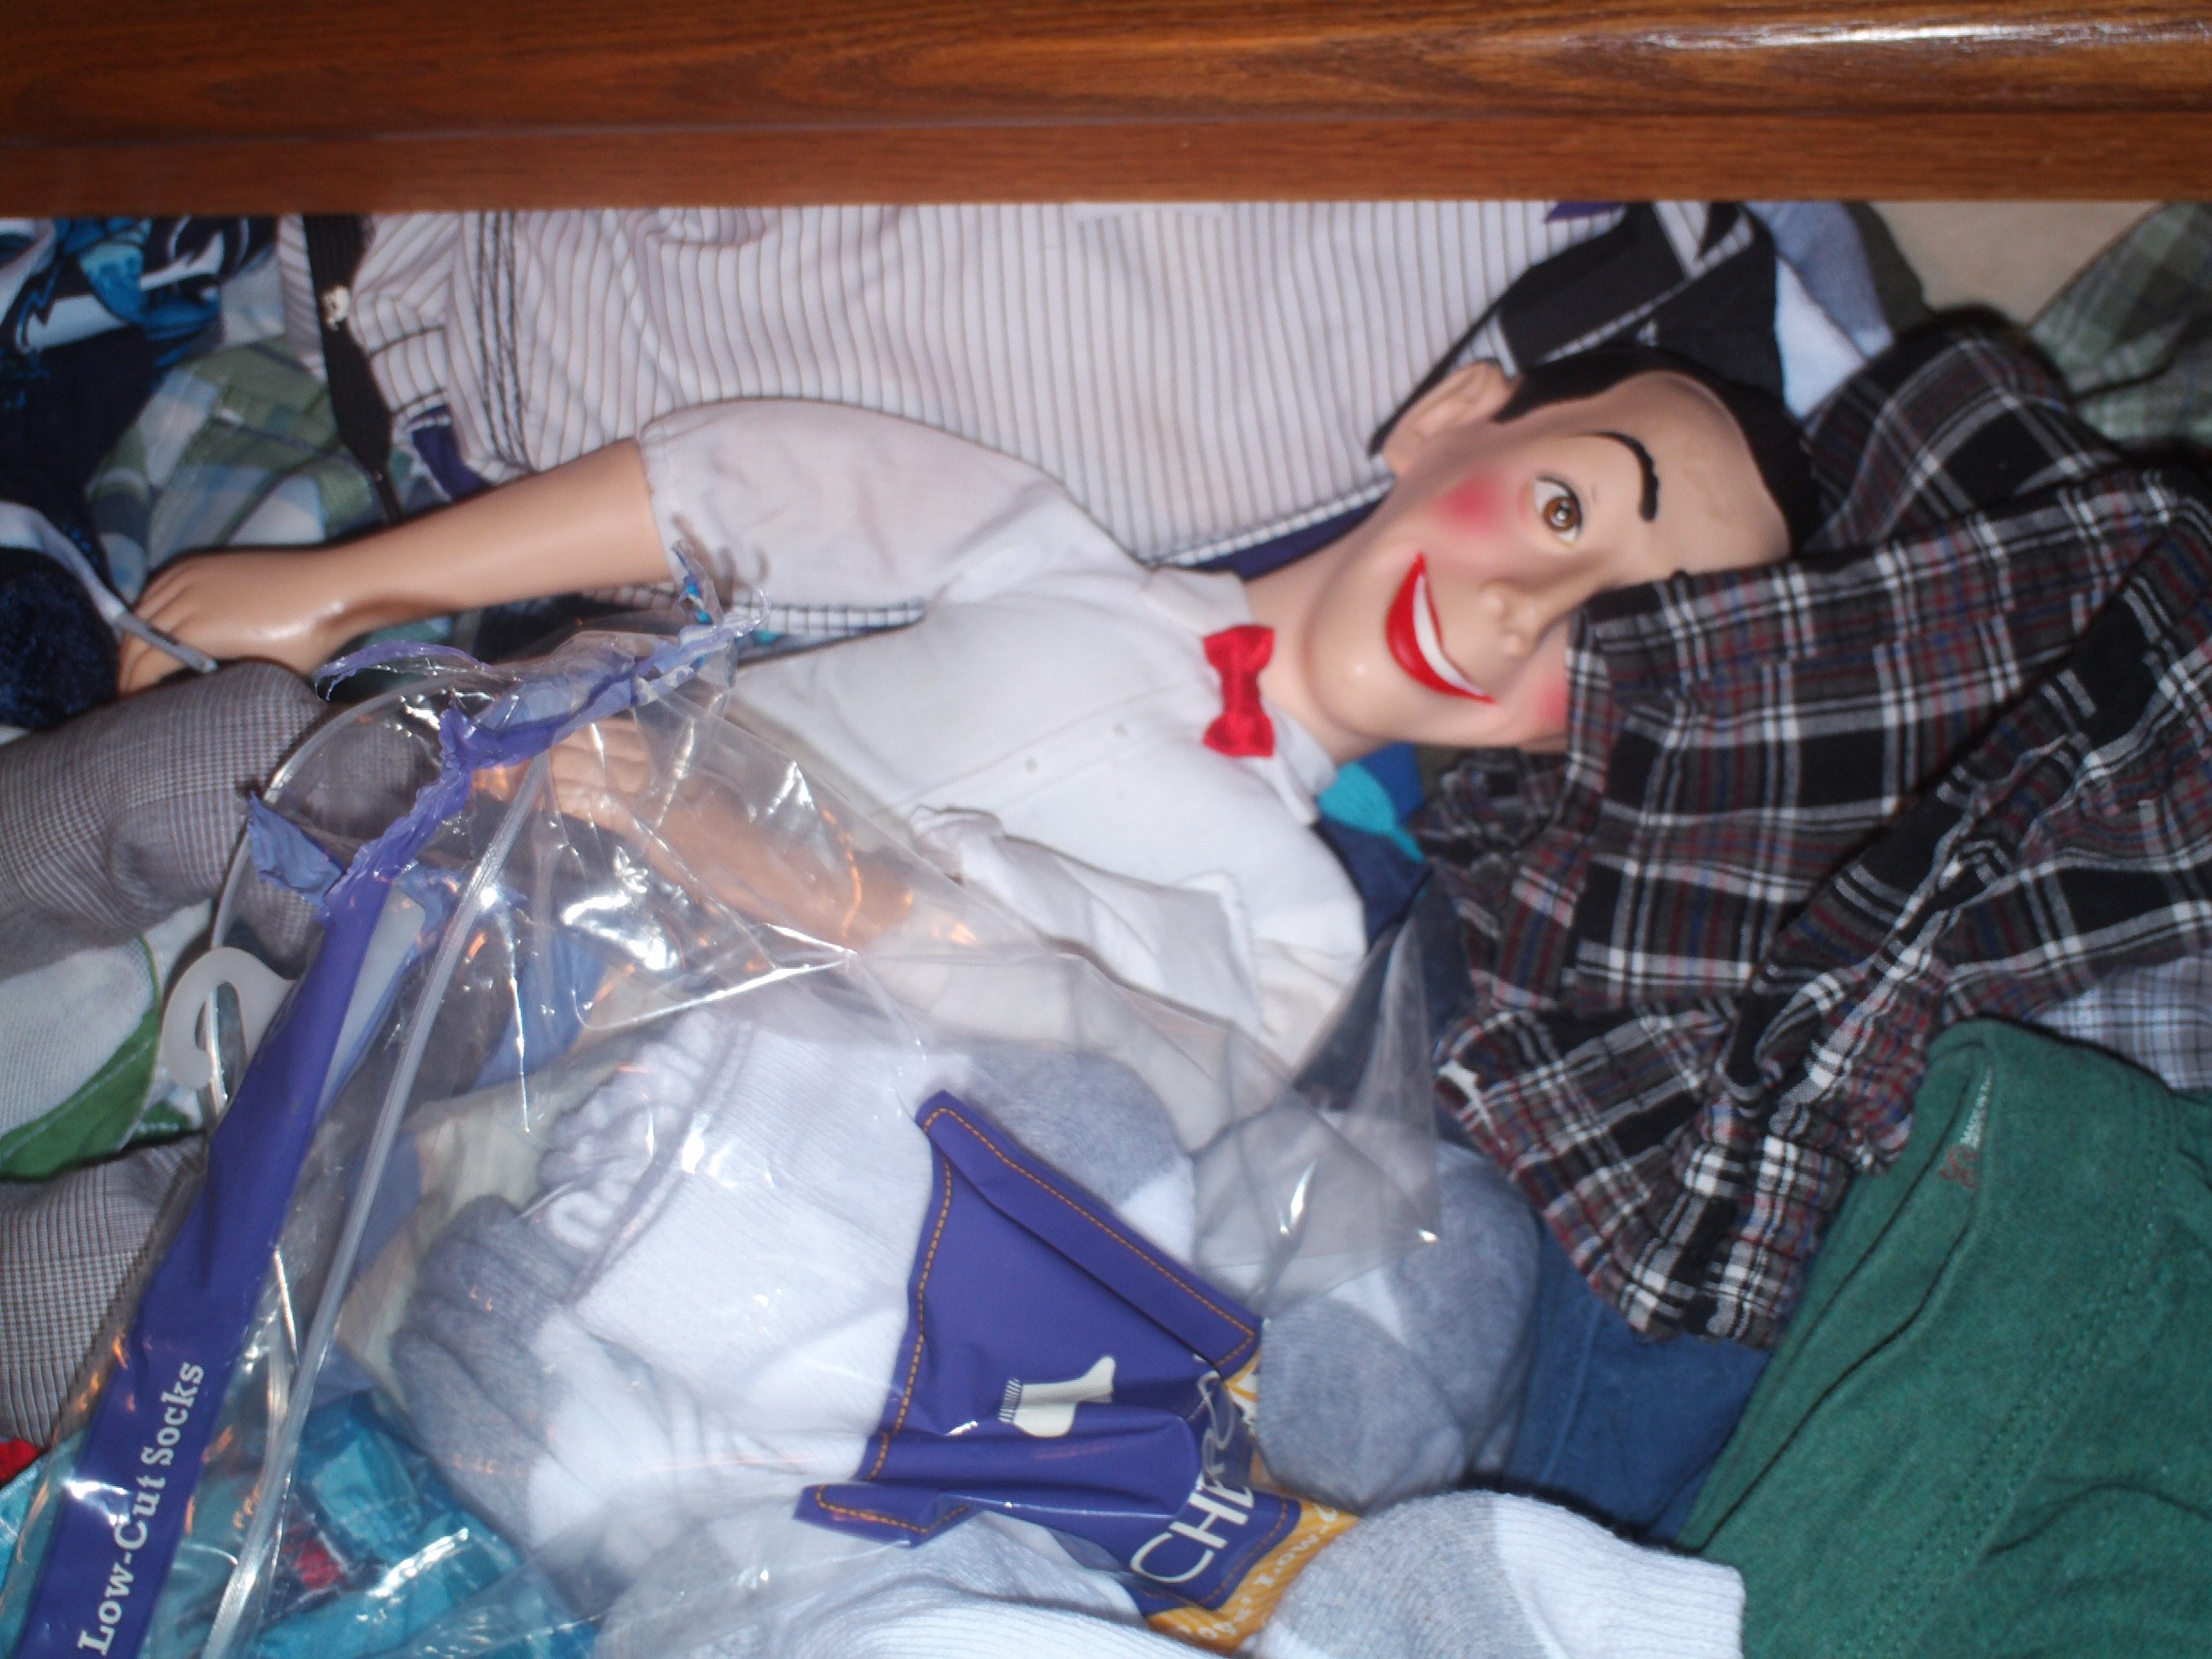 pee-wee in a drawer